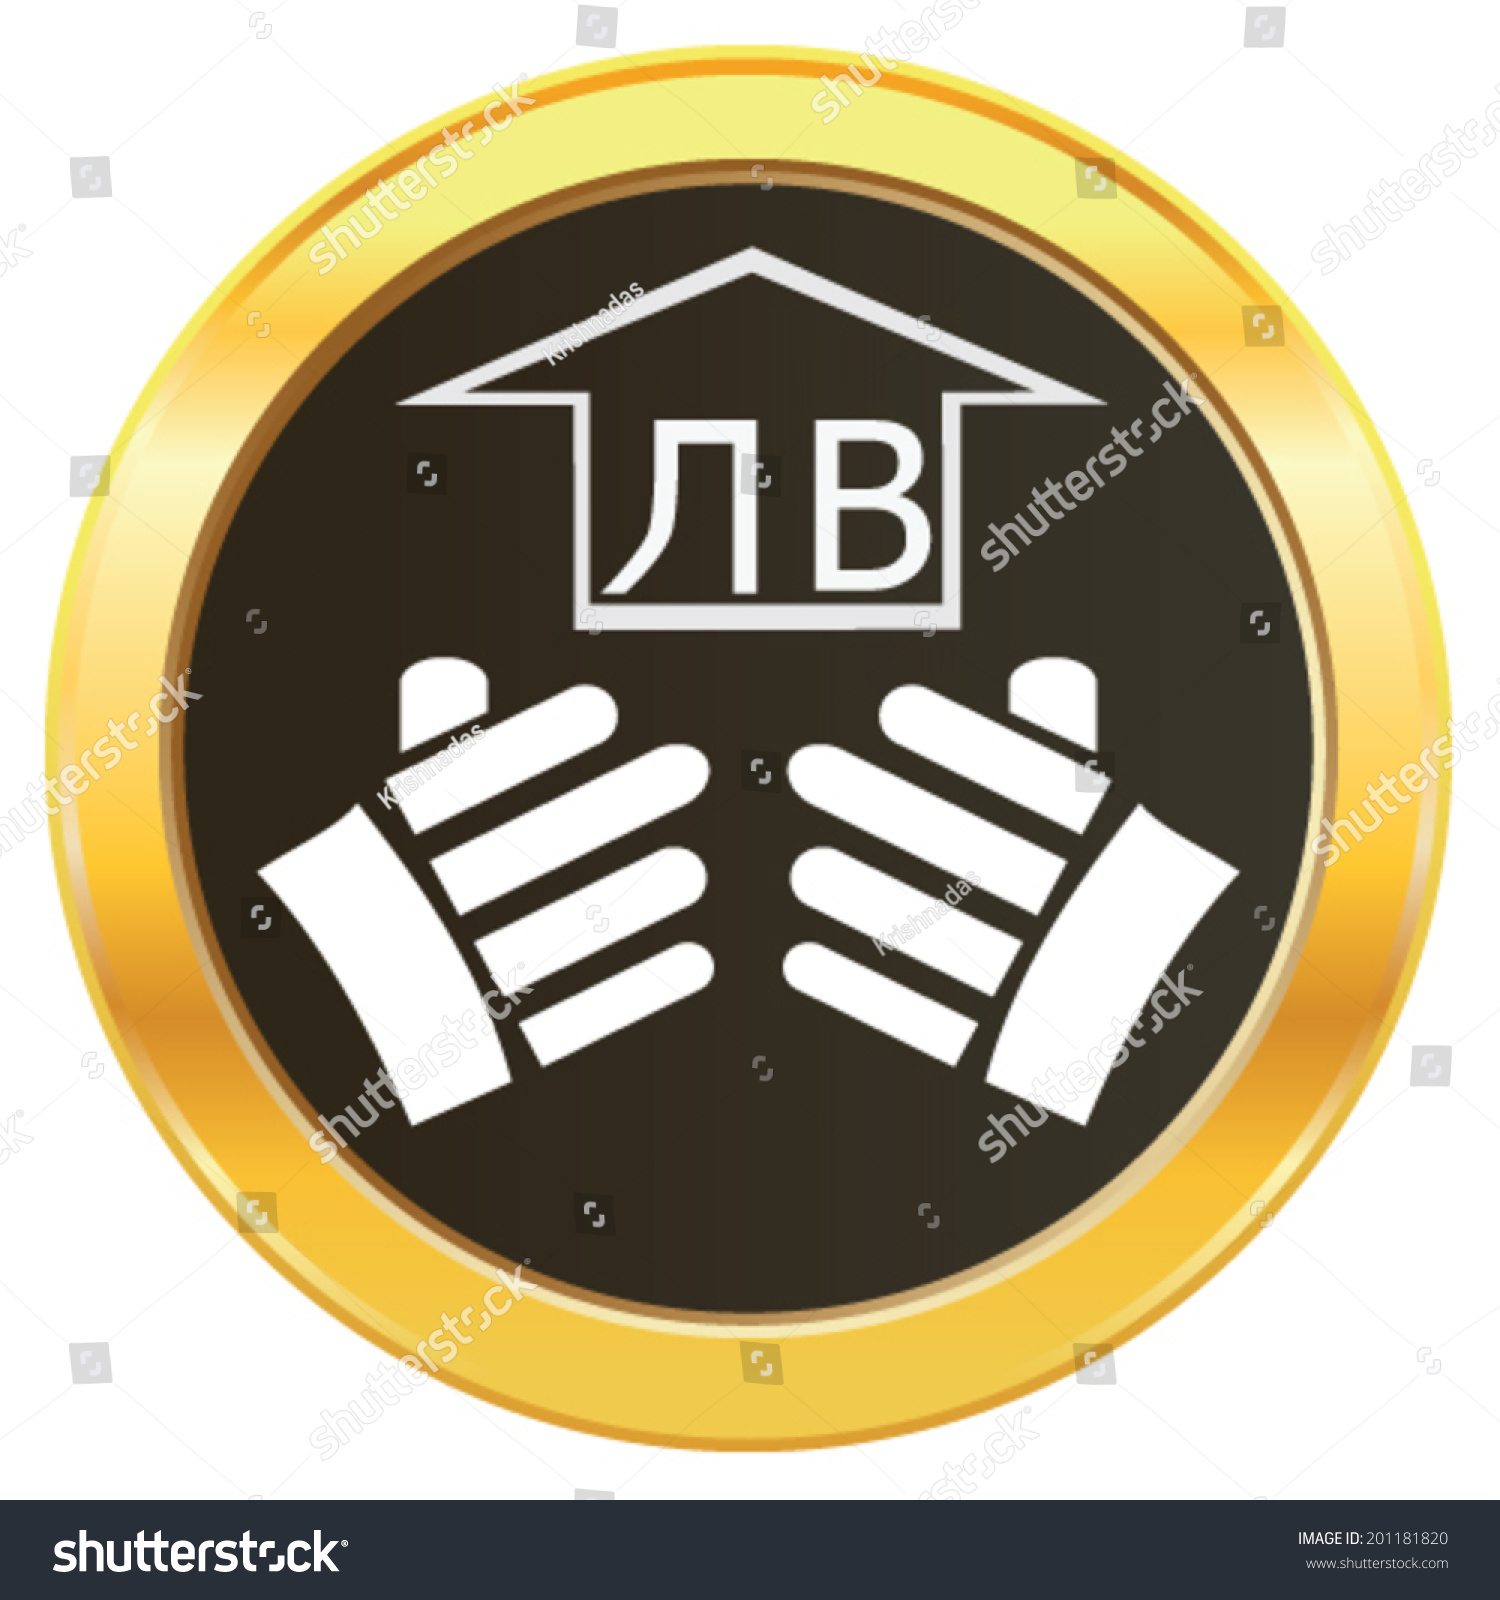 Vector design hand lifting growth bulgaria stock vector 201181820 vector design of hand lifting the growth of bulgaria currency symbol bulgarian lev representing money on biocorpaavc